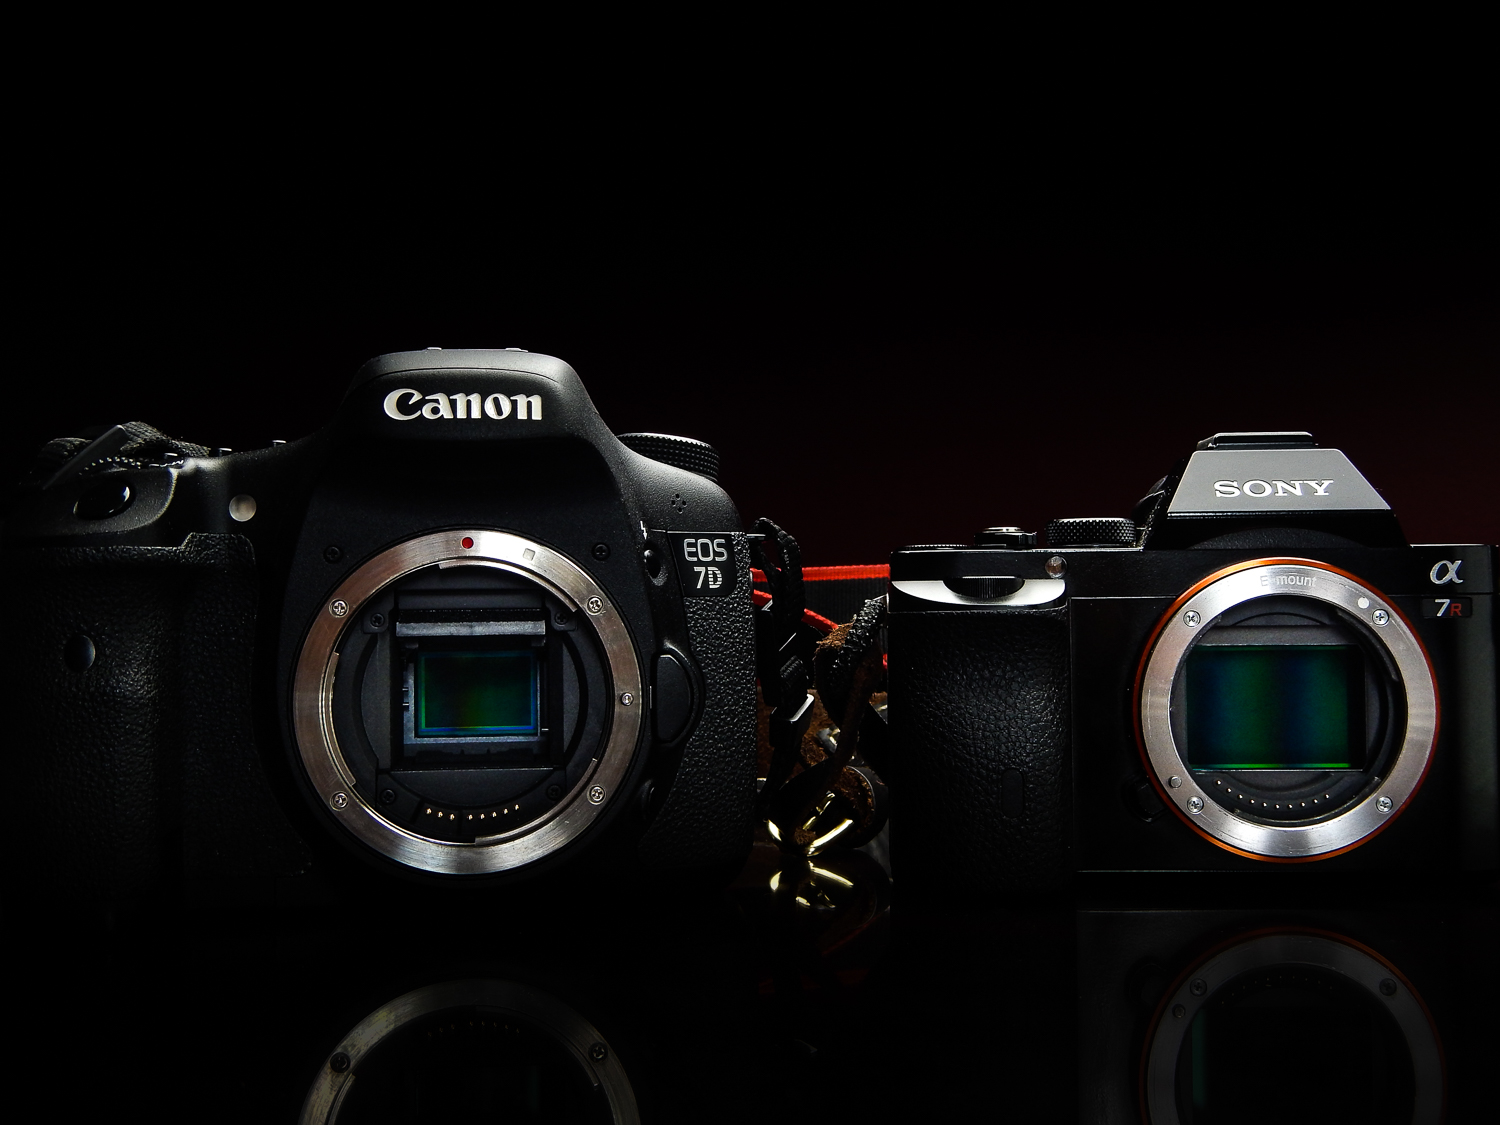 Why We Have Such a Love-Hate Relationship with Mirrorless Cameras